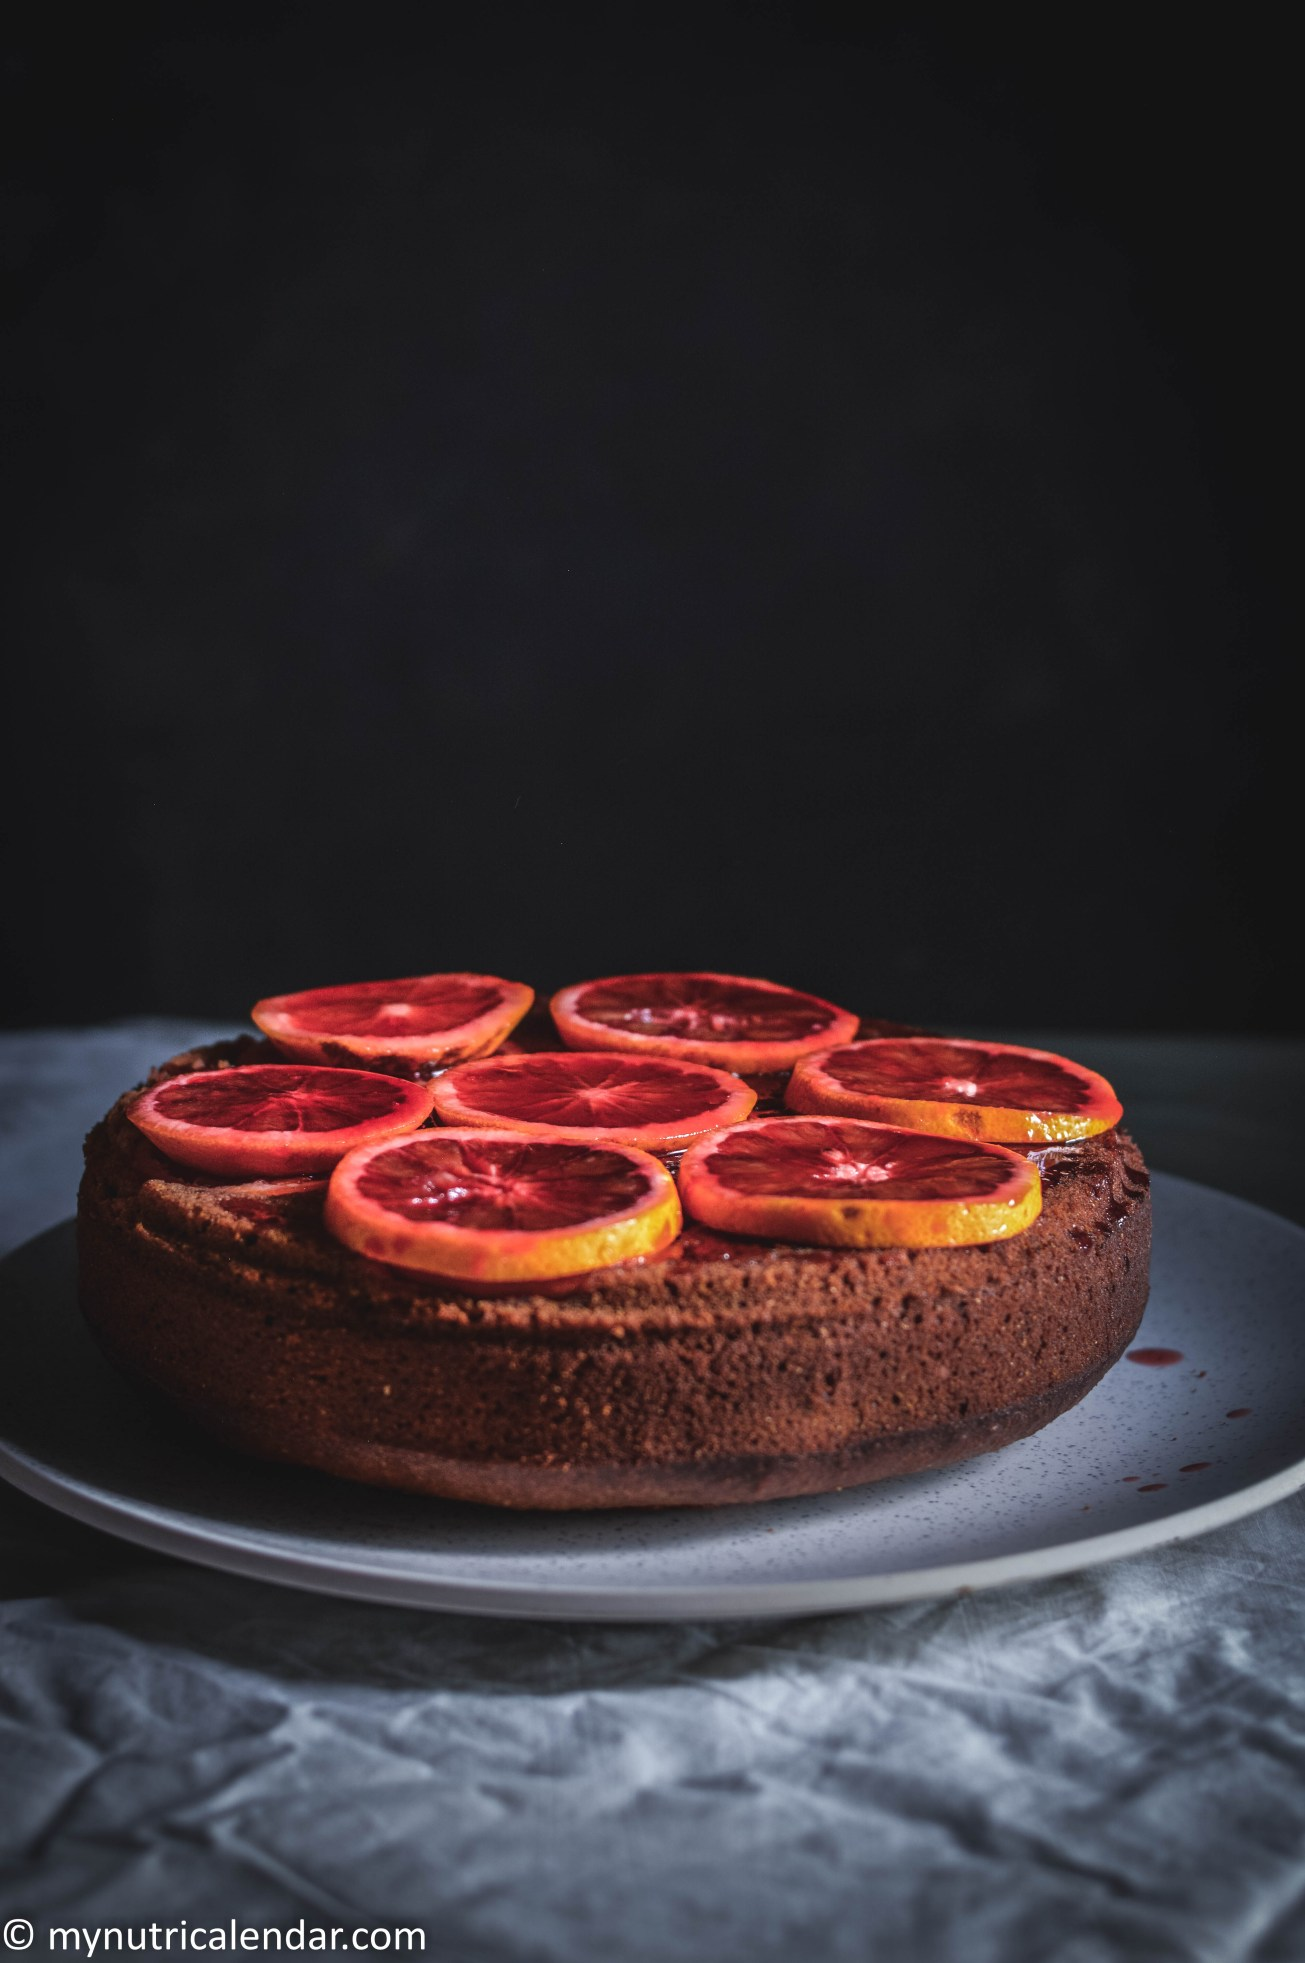 blood-orange-cake-chocolate-chips-raisins-no-sugar-2